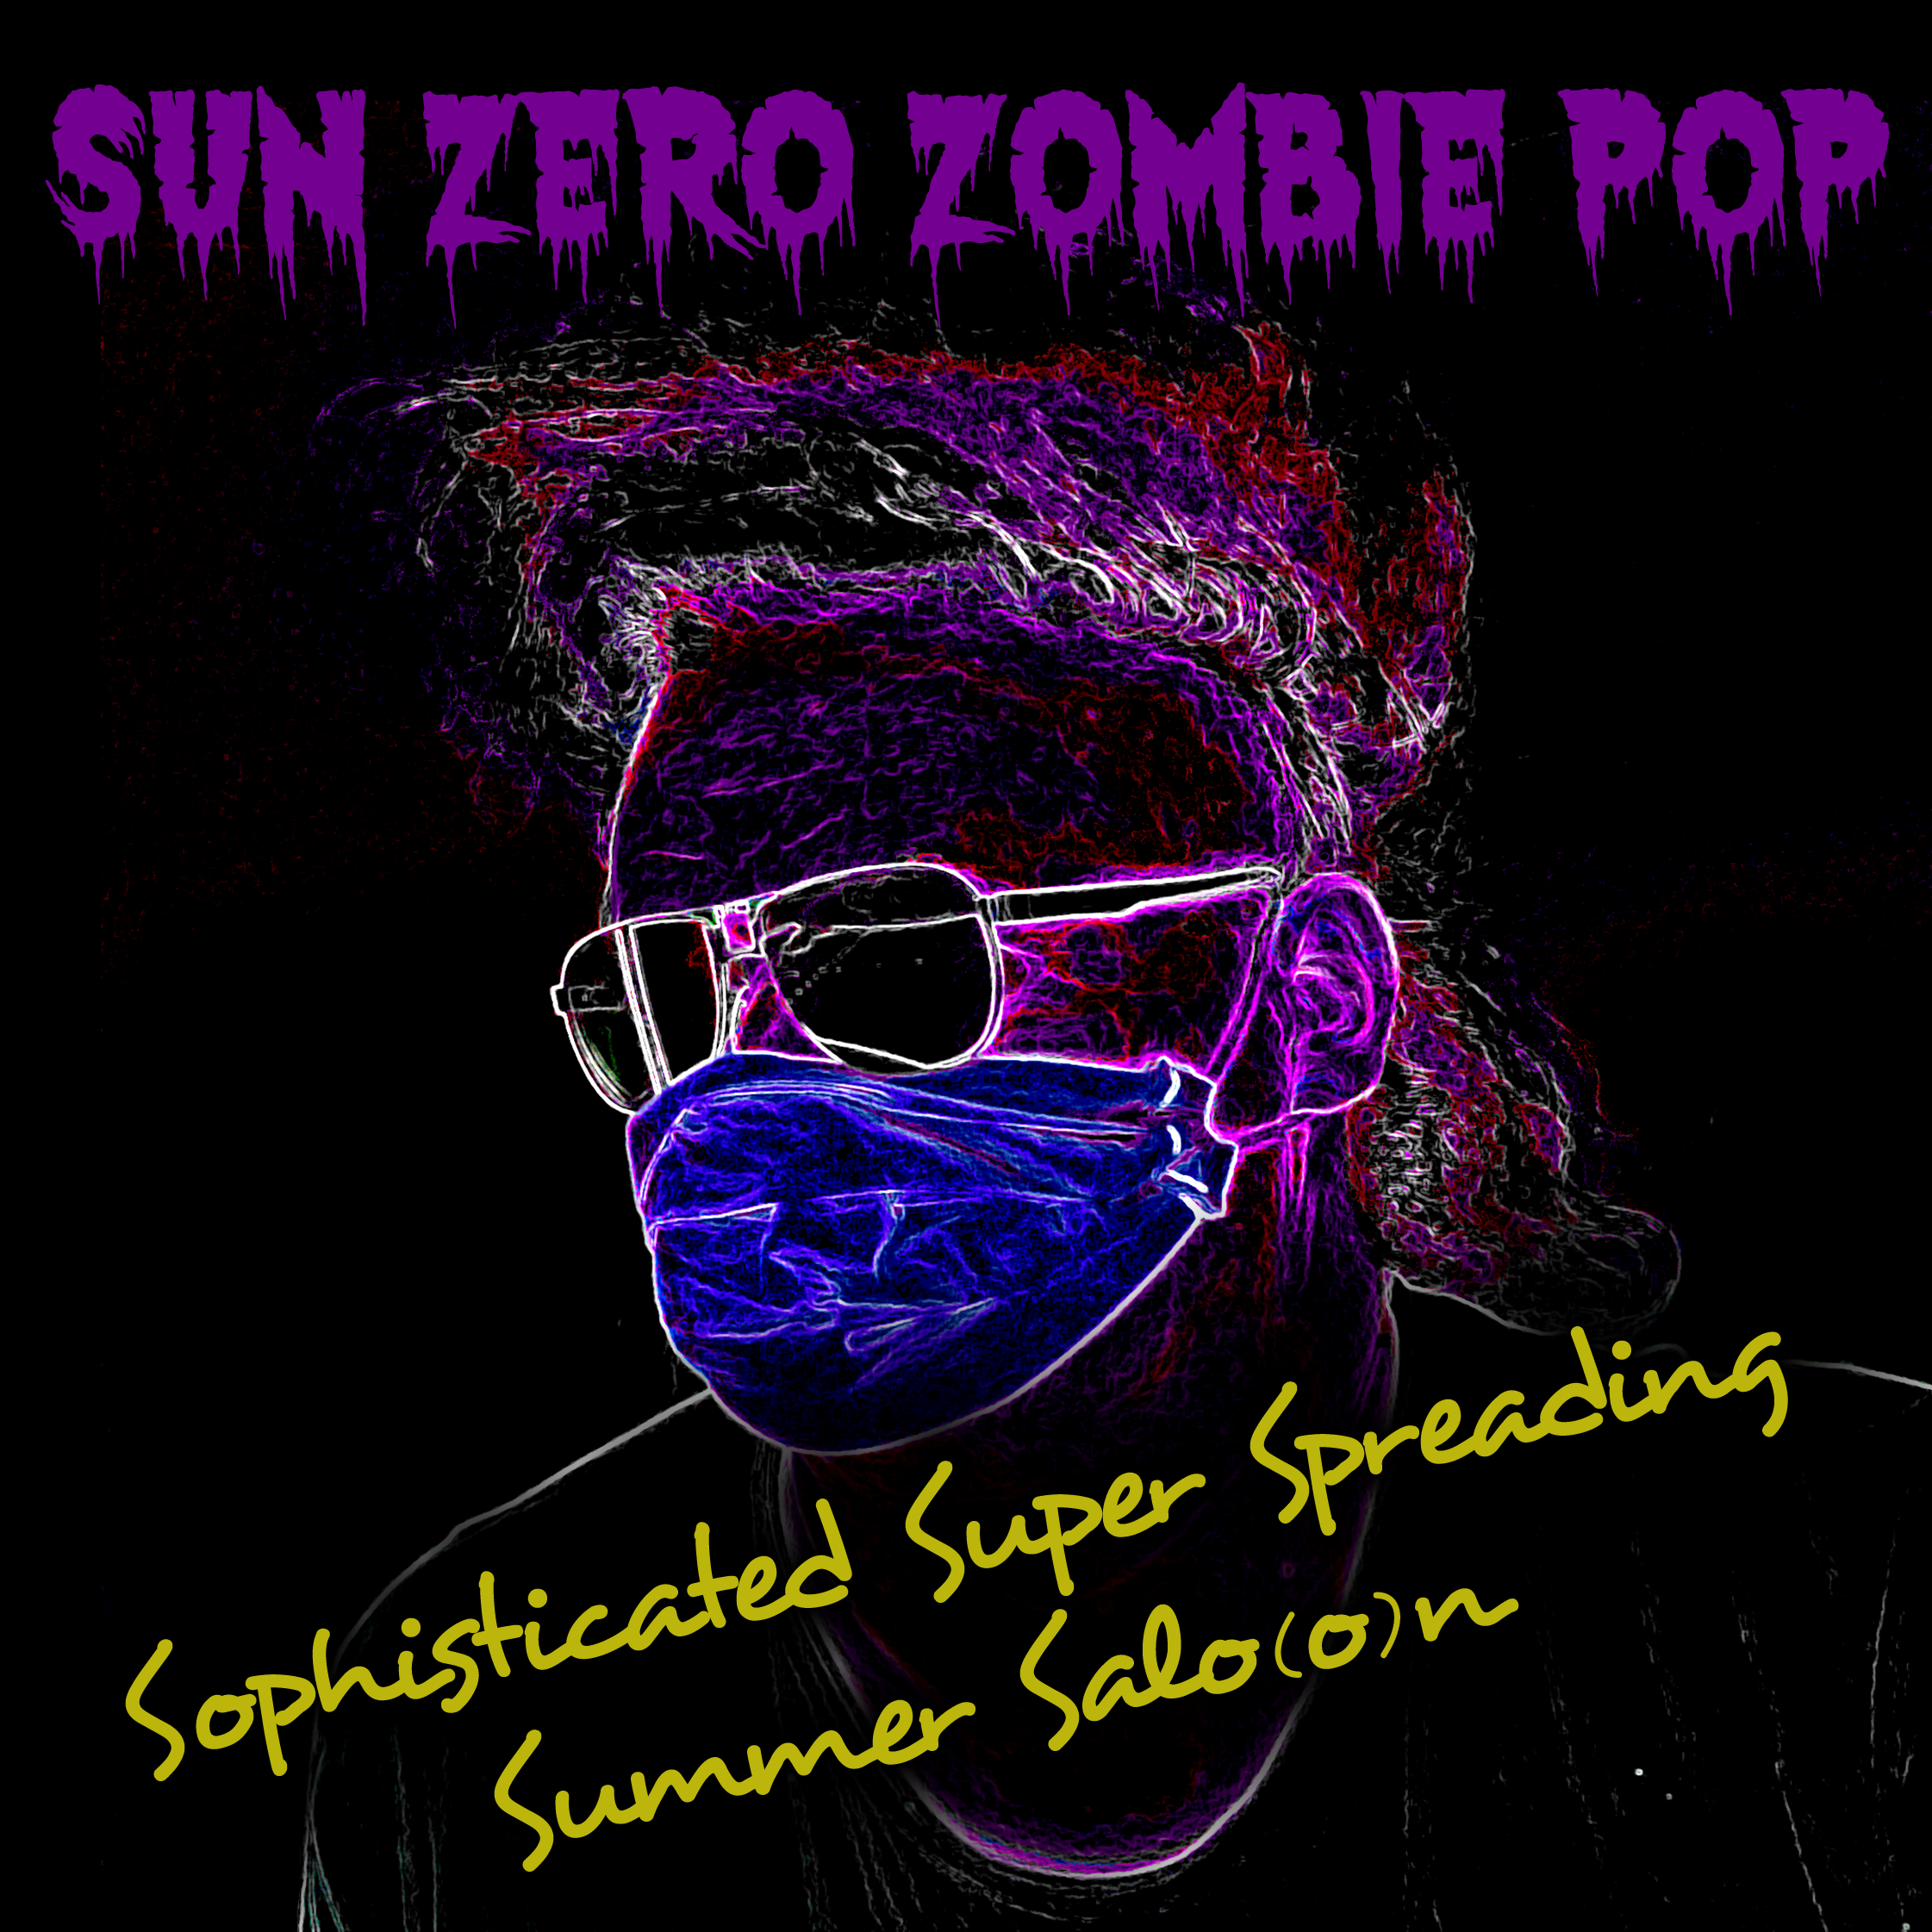 Album-Cover Sophisticated Super Spreading Summer Salo(o)n